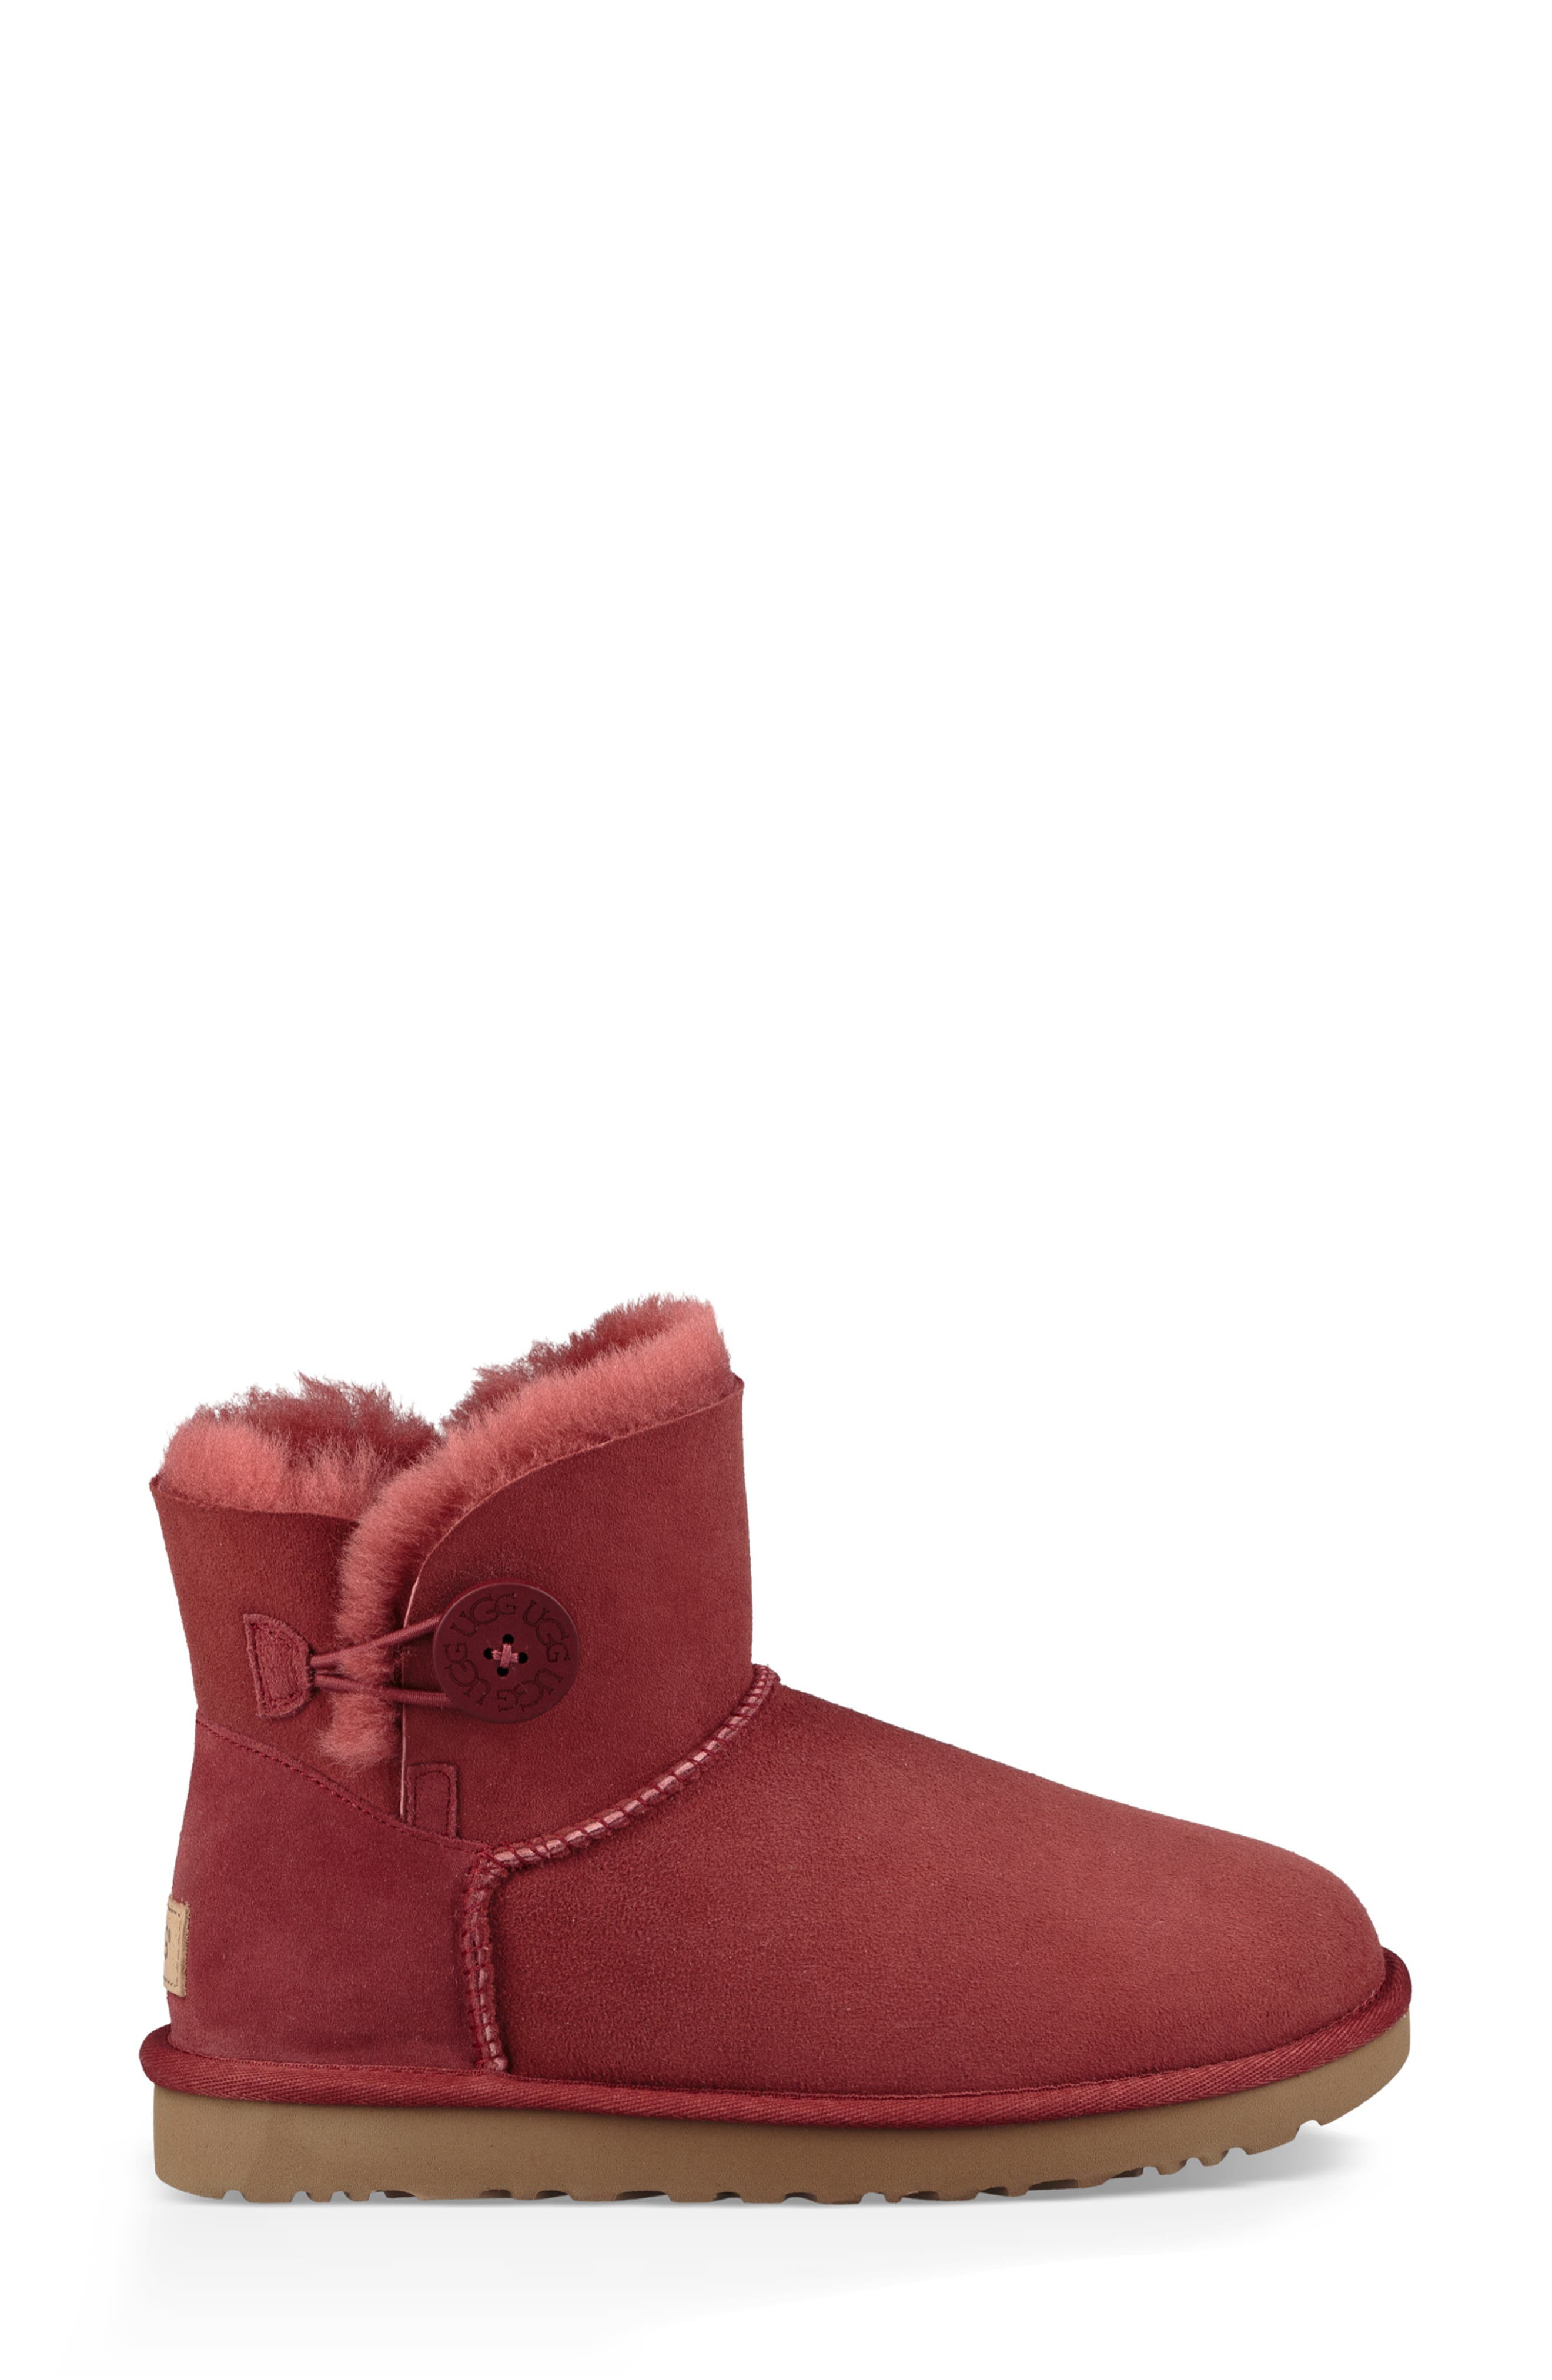 'Mini Bailey Button II' Boot,                             Alternate thumbnail 3, color,                             REDWOOD SUEDE